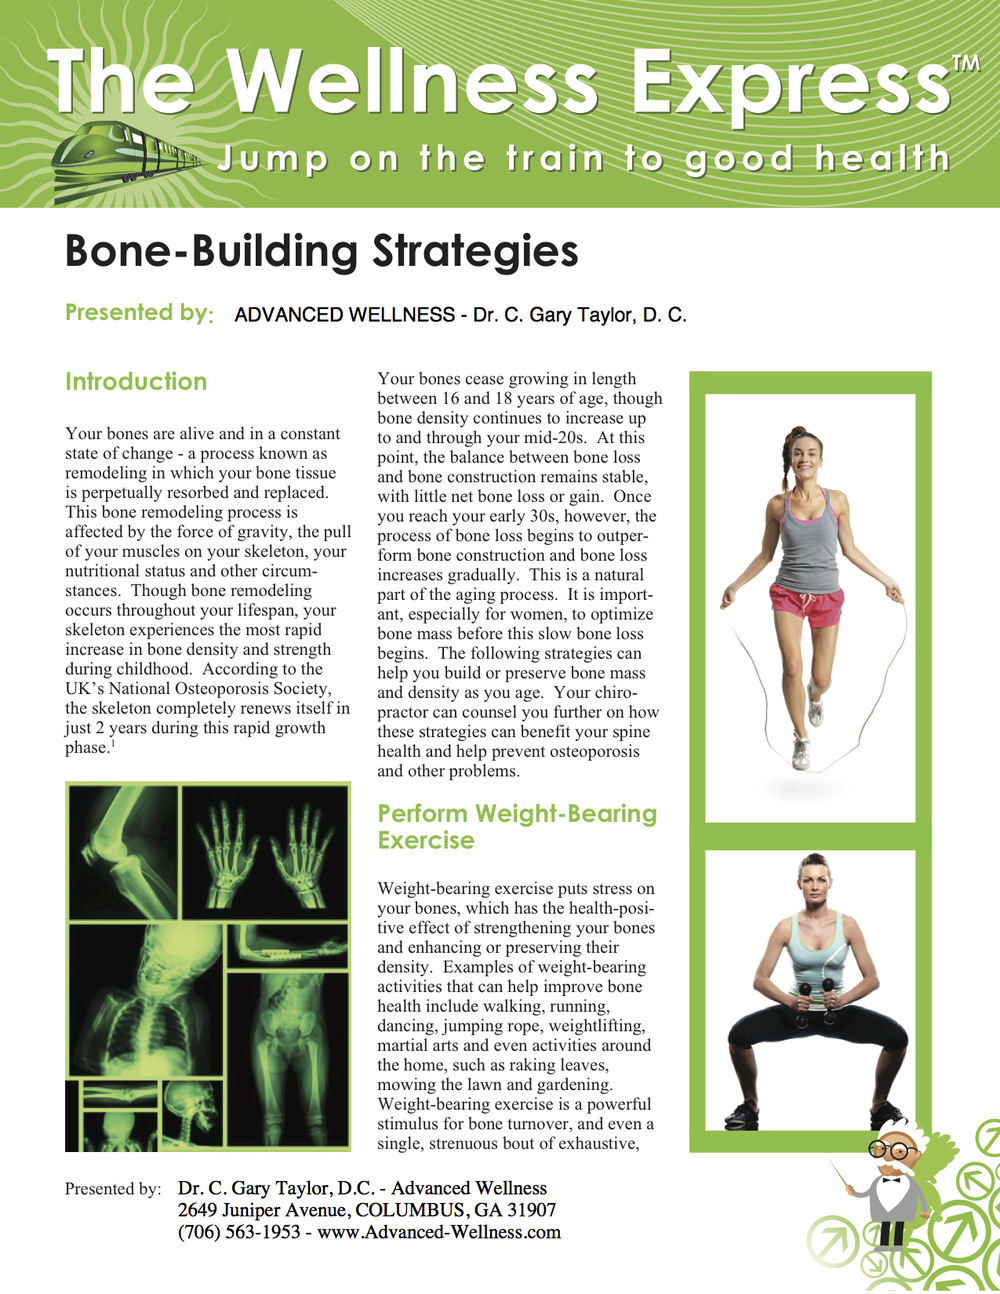 Weekly Newsletter: Bone-Building Strategies